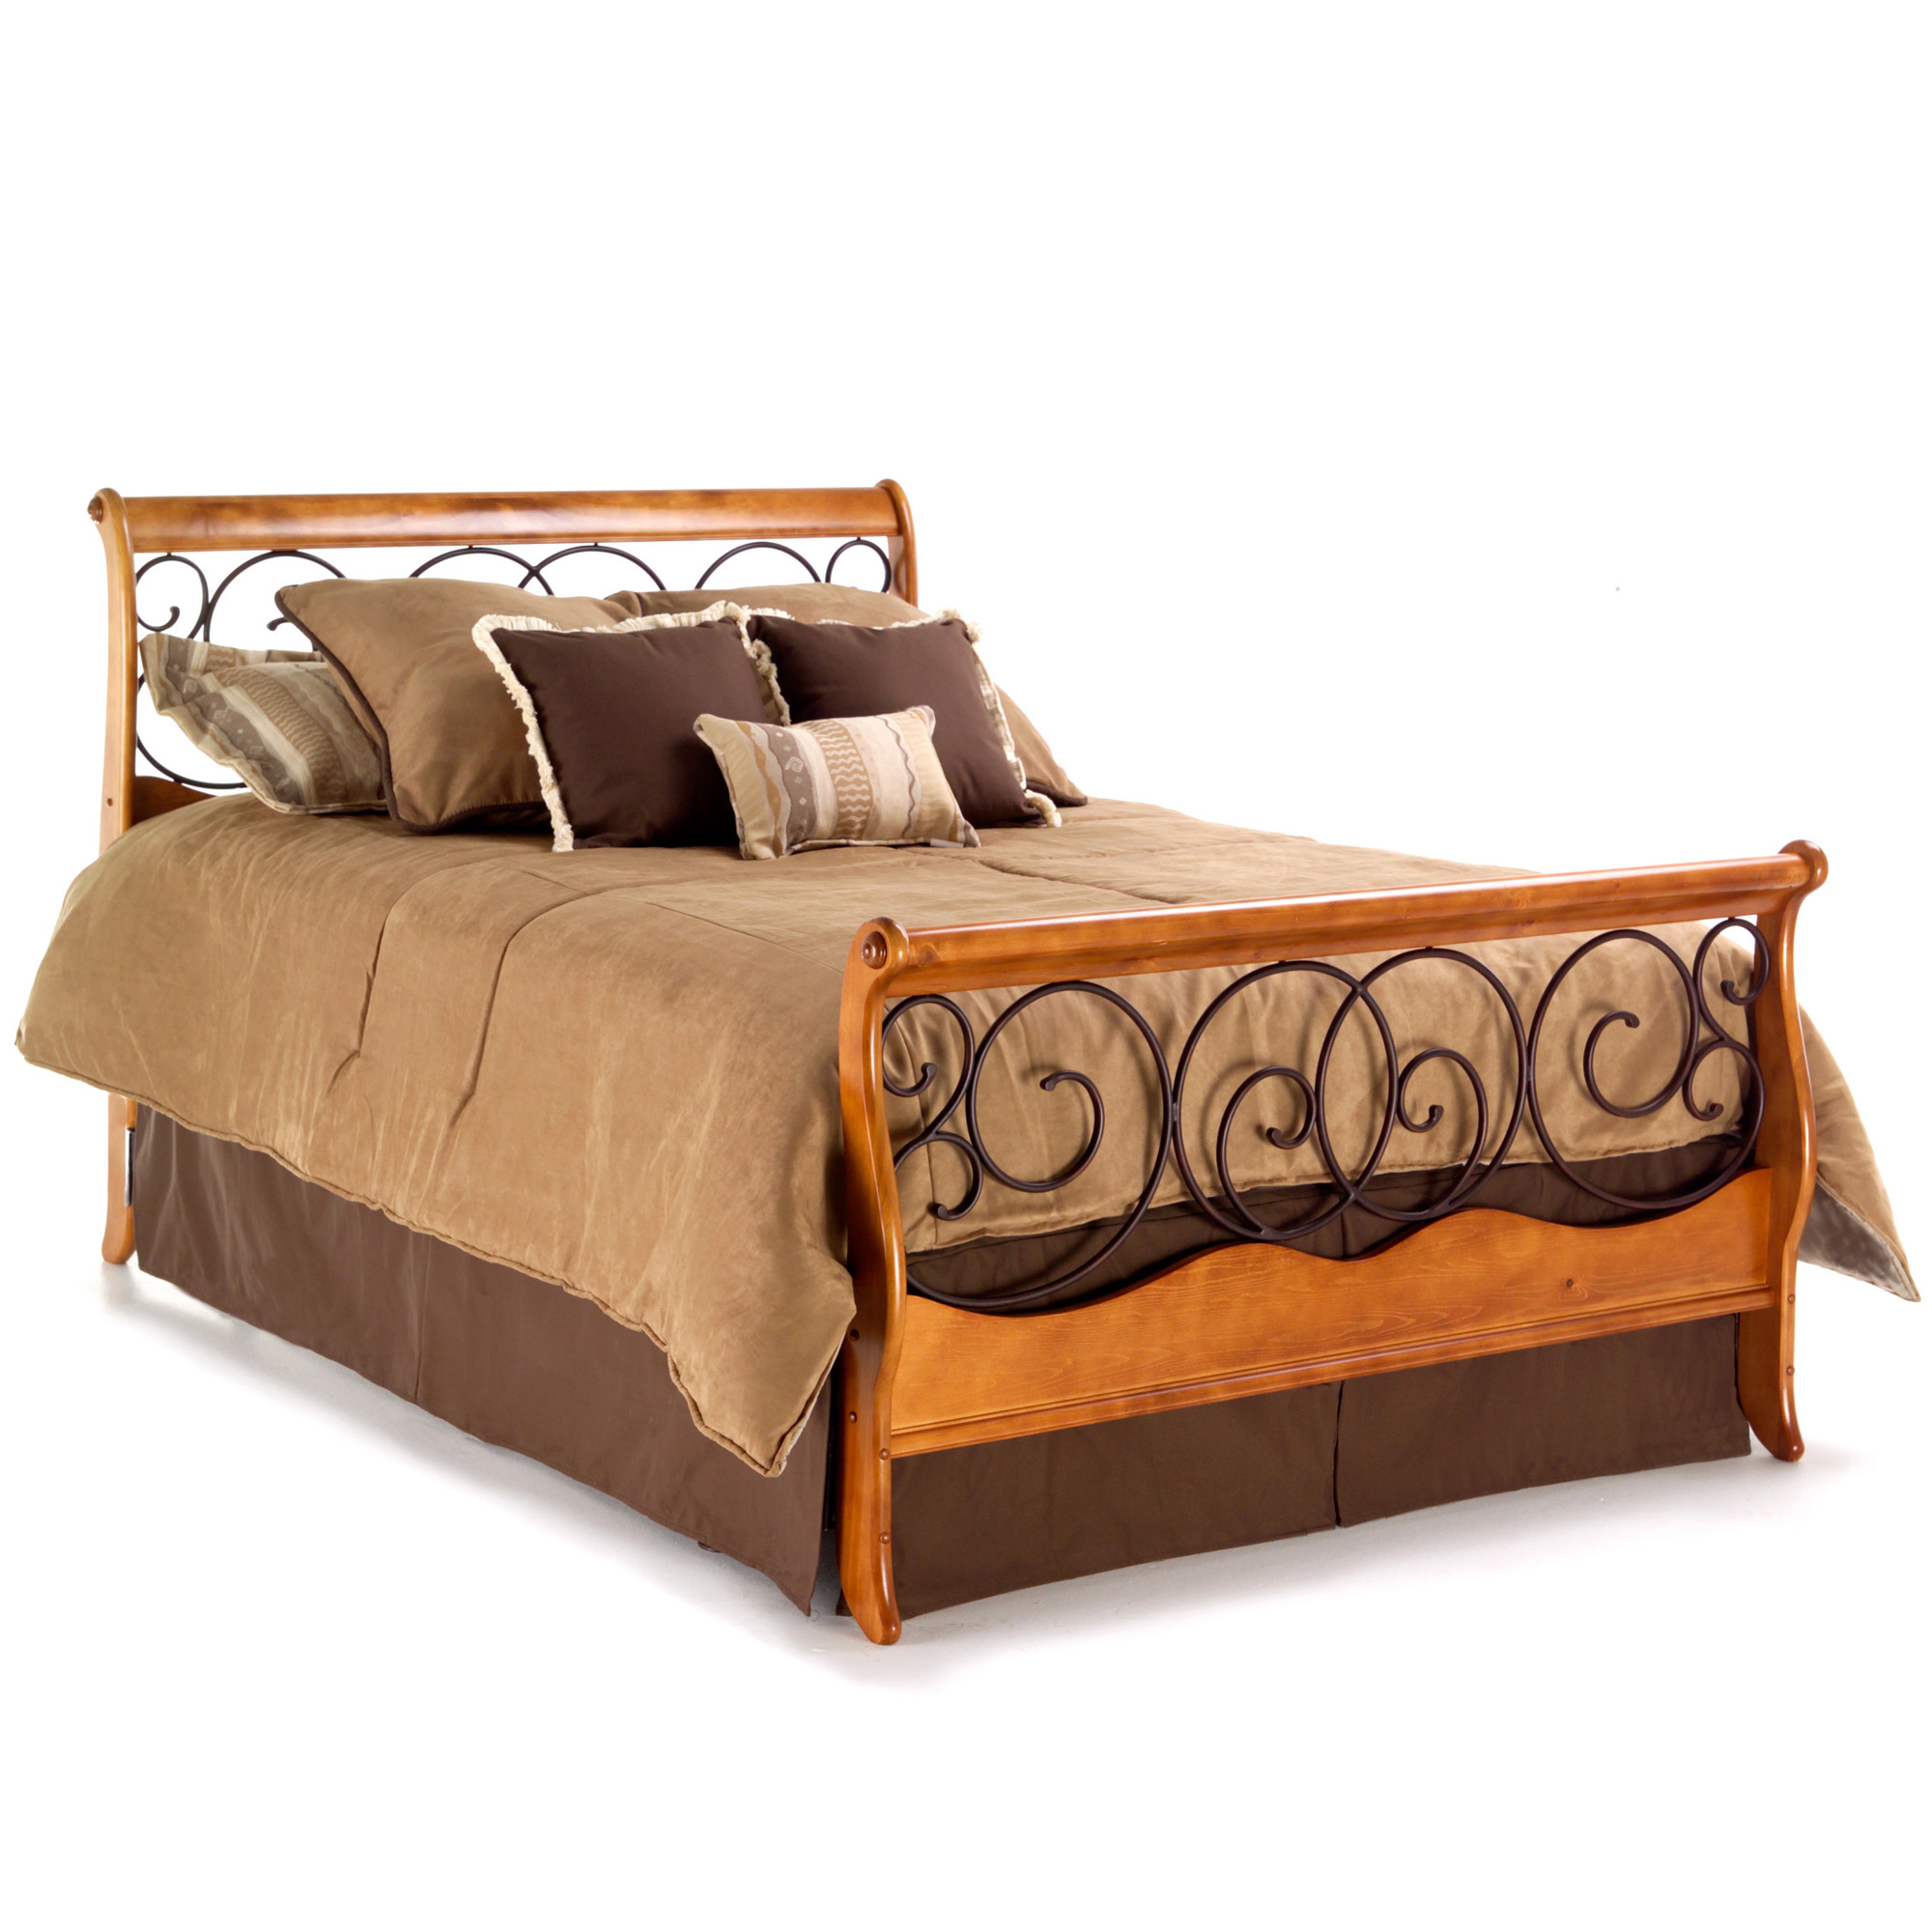 Dunhill Wood And Iron Bed Autumn Brown Honey Oak Finish